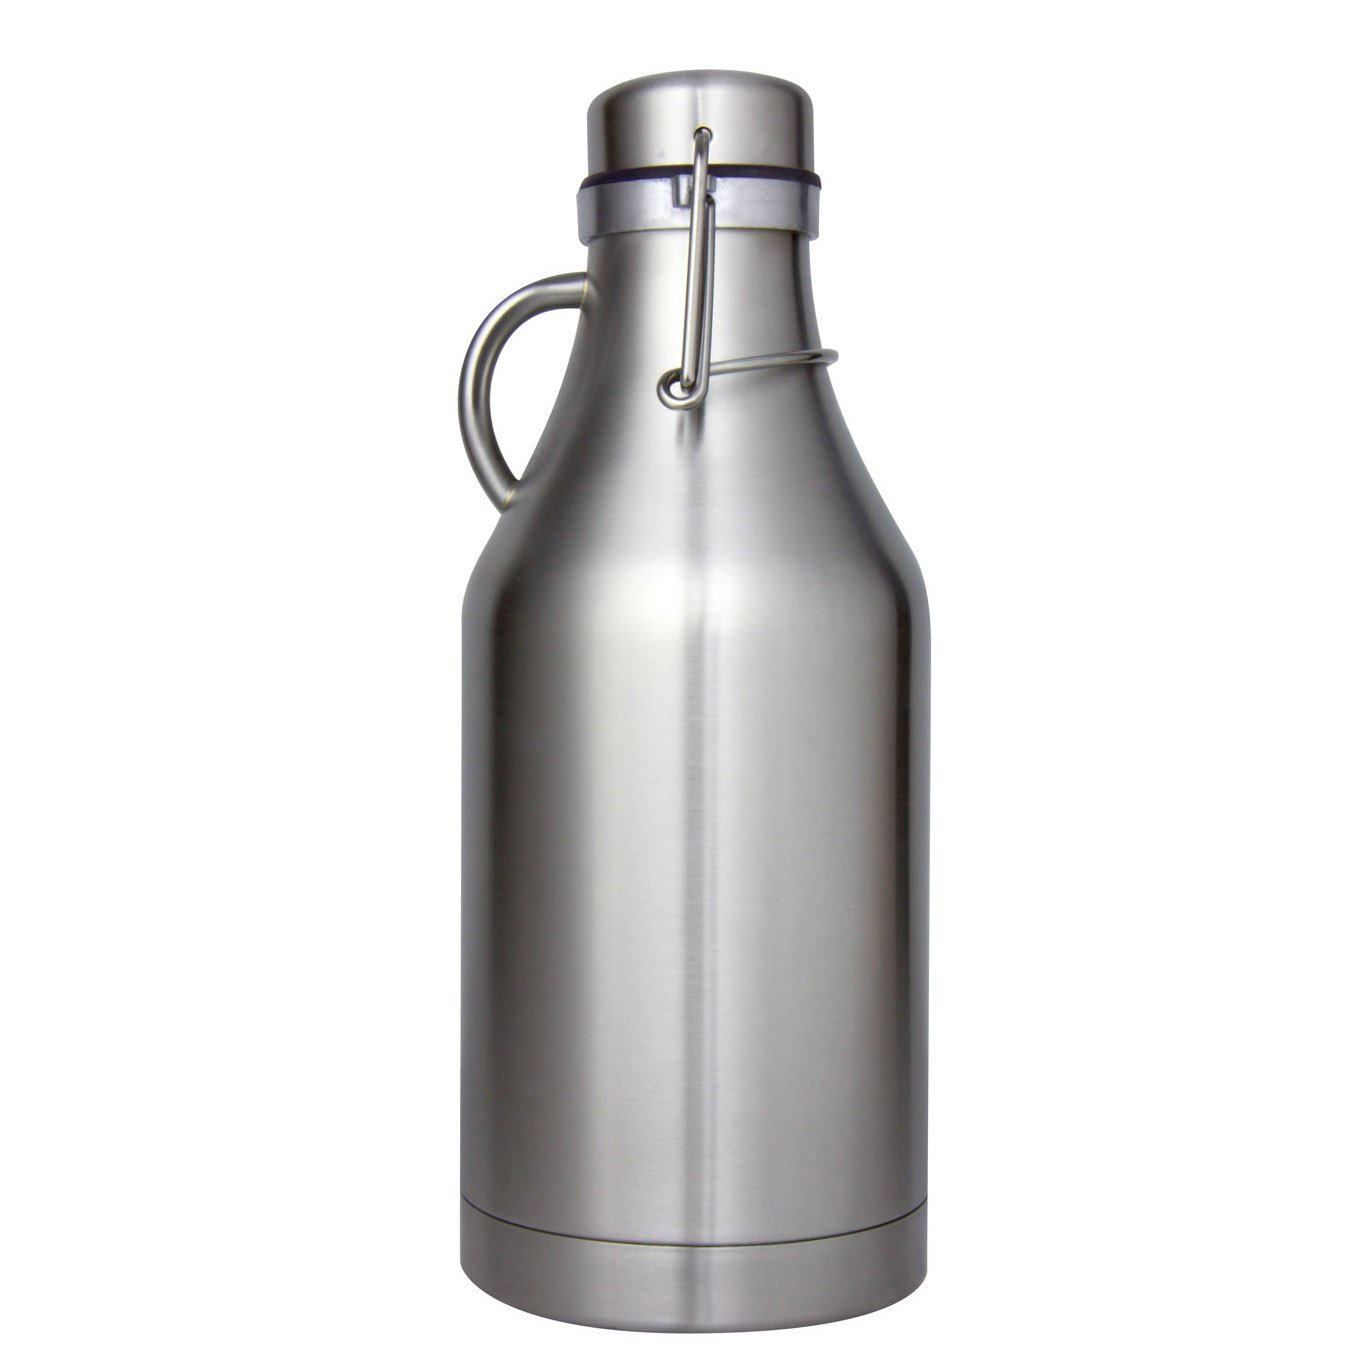 Kegco FD-32SS Beer Growler, 32 oz